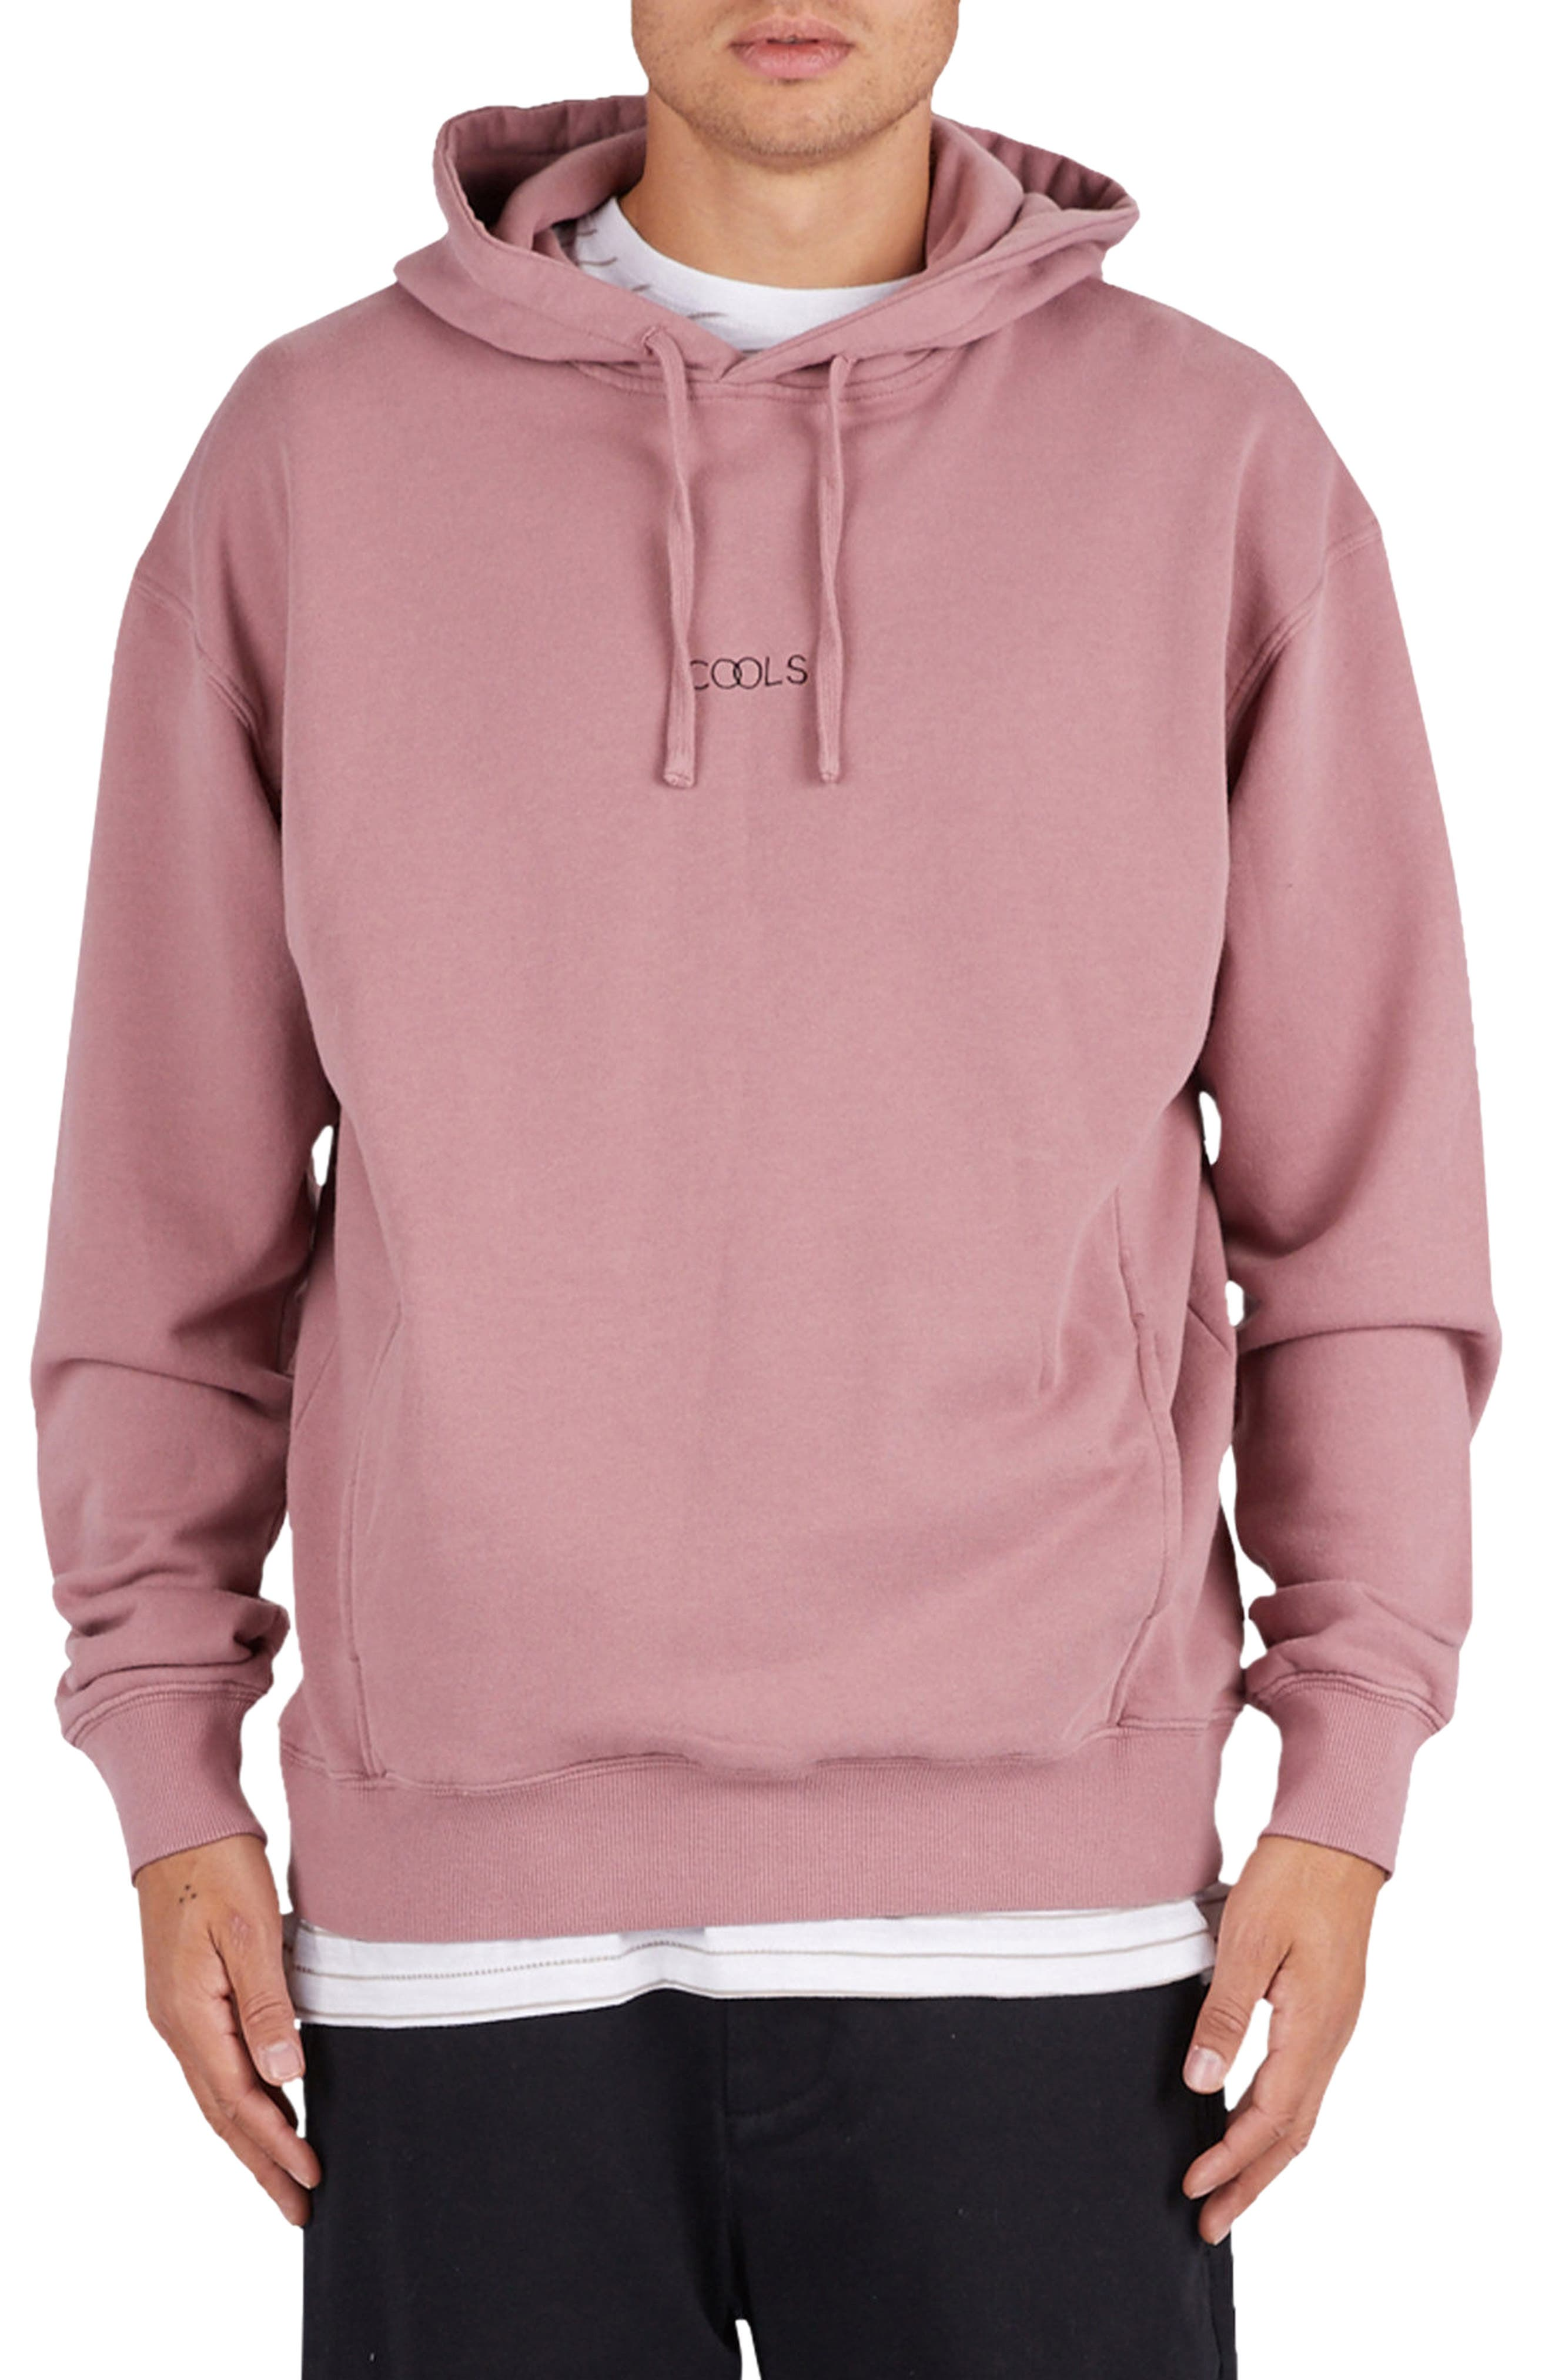 Barney Cools Olympic Embo Pullover Hoodie